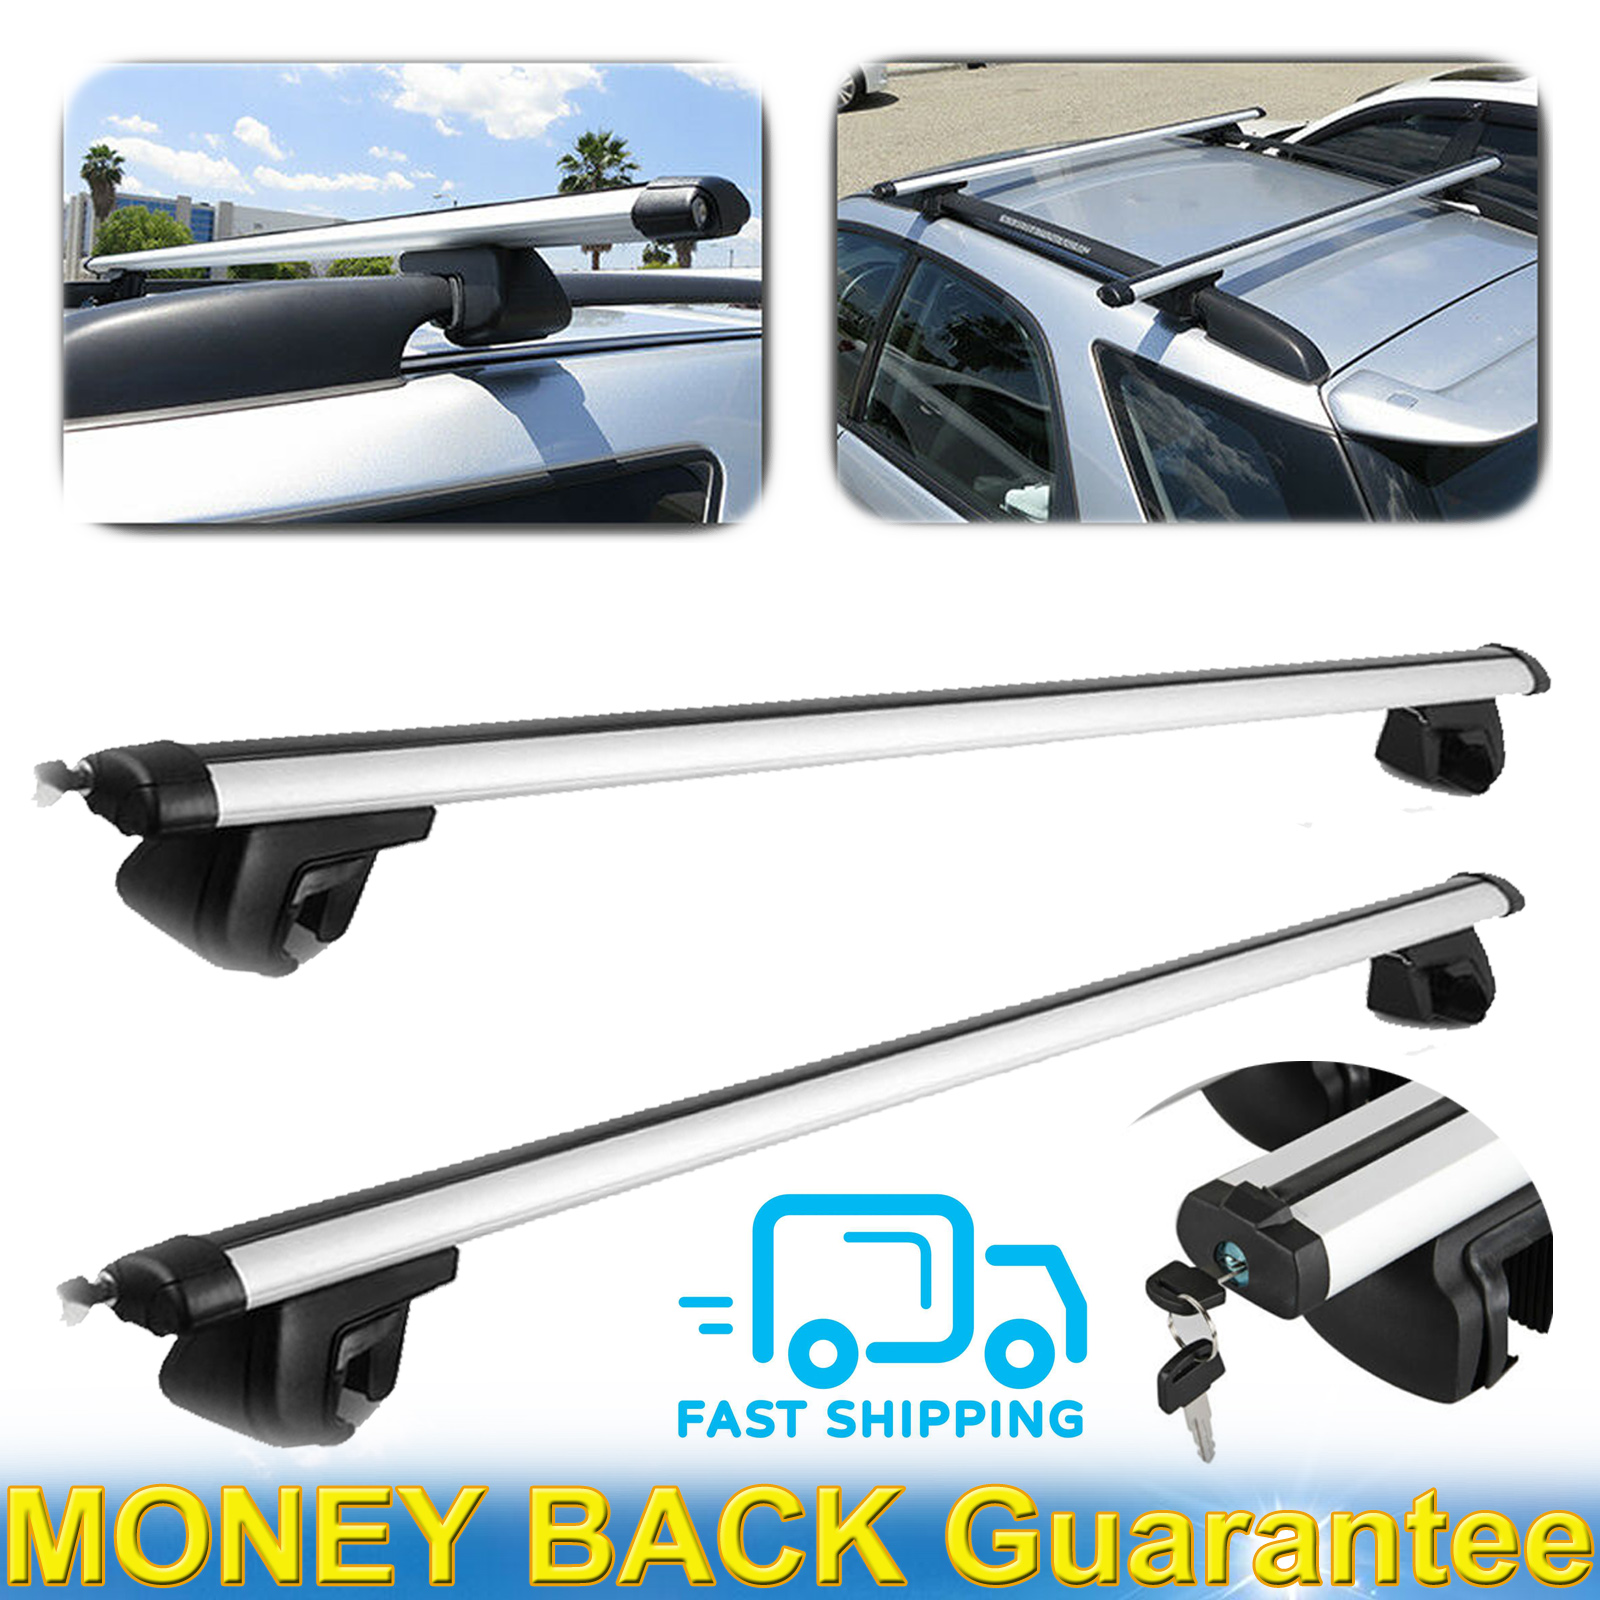 ROOF RACK STEEL BMW X4 from 2014 without longitudinal bars